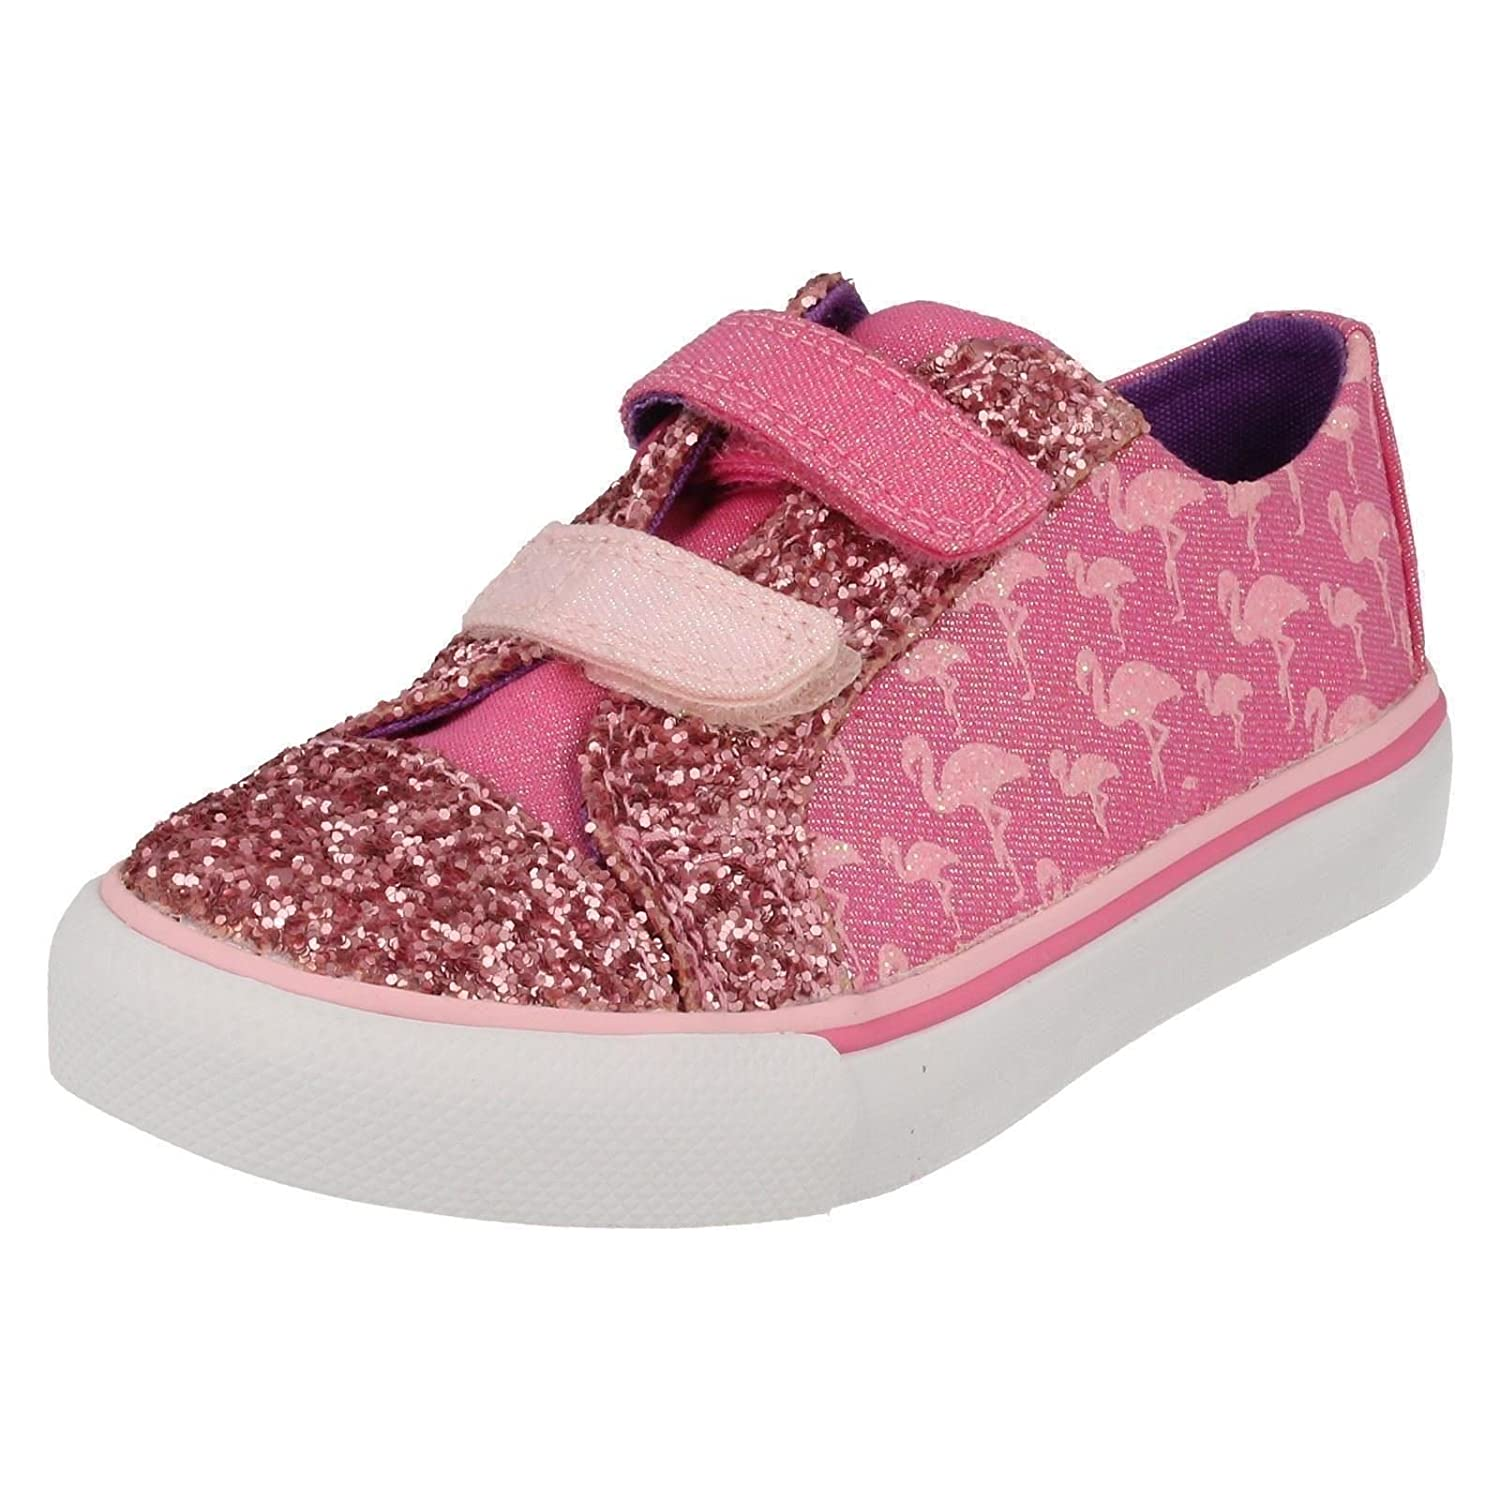 Clarks Brill Race Inf, sandales fille